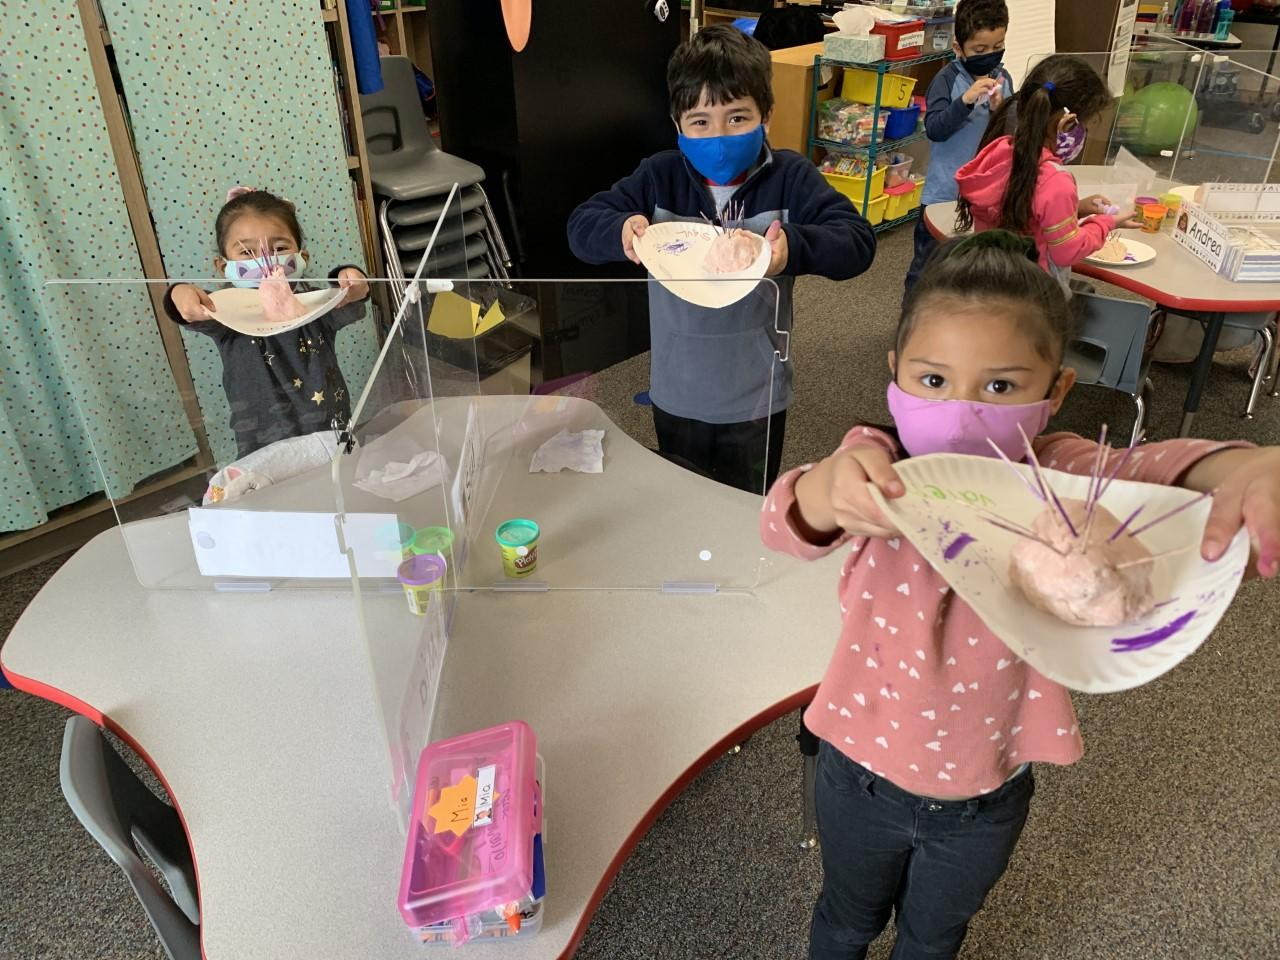 West Elementary pre-kindergarten students made sea urchins out of homemade Play Dough. The kids are learning about ocean animals and the color purple. Their teacher is Claudia Myers.